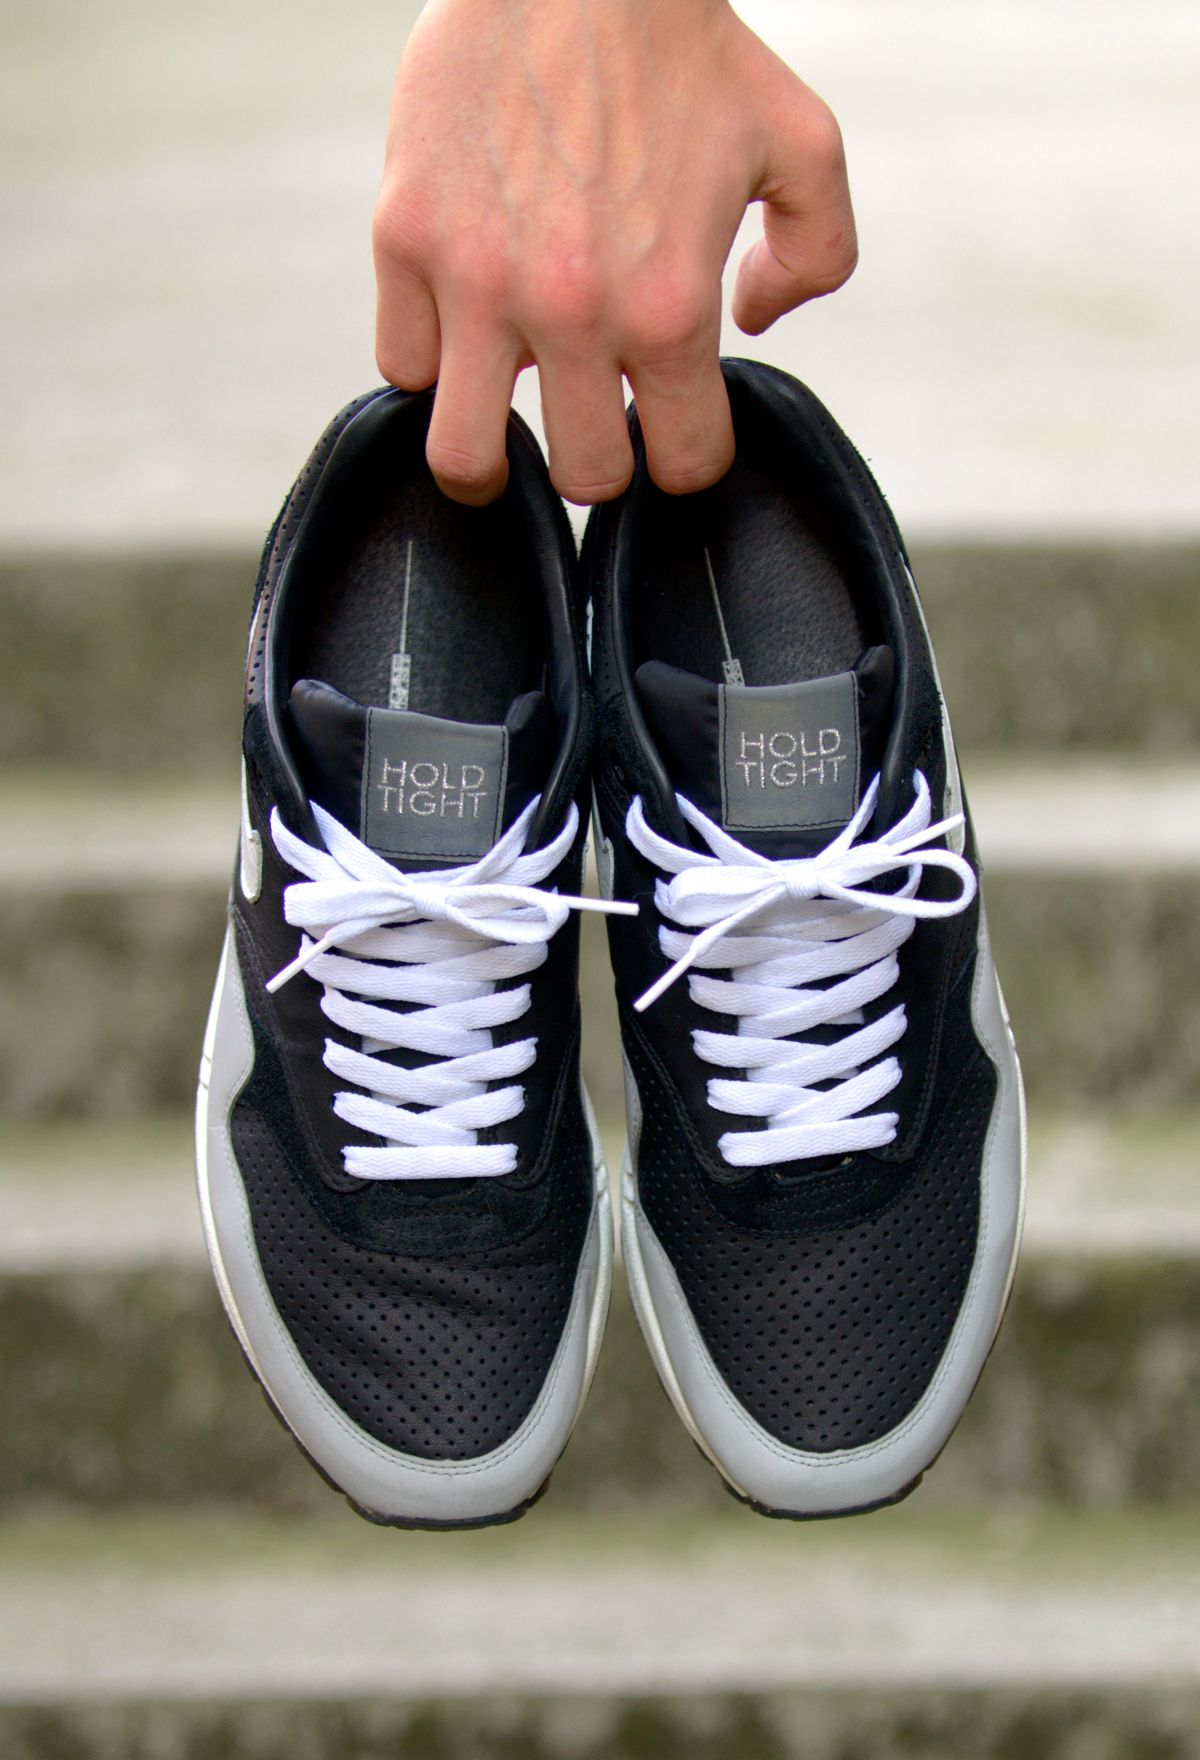 Nike Air Max 1 'Hold Tight' (by realslimspencer) Sport